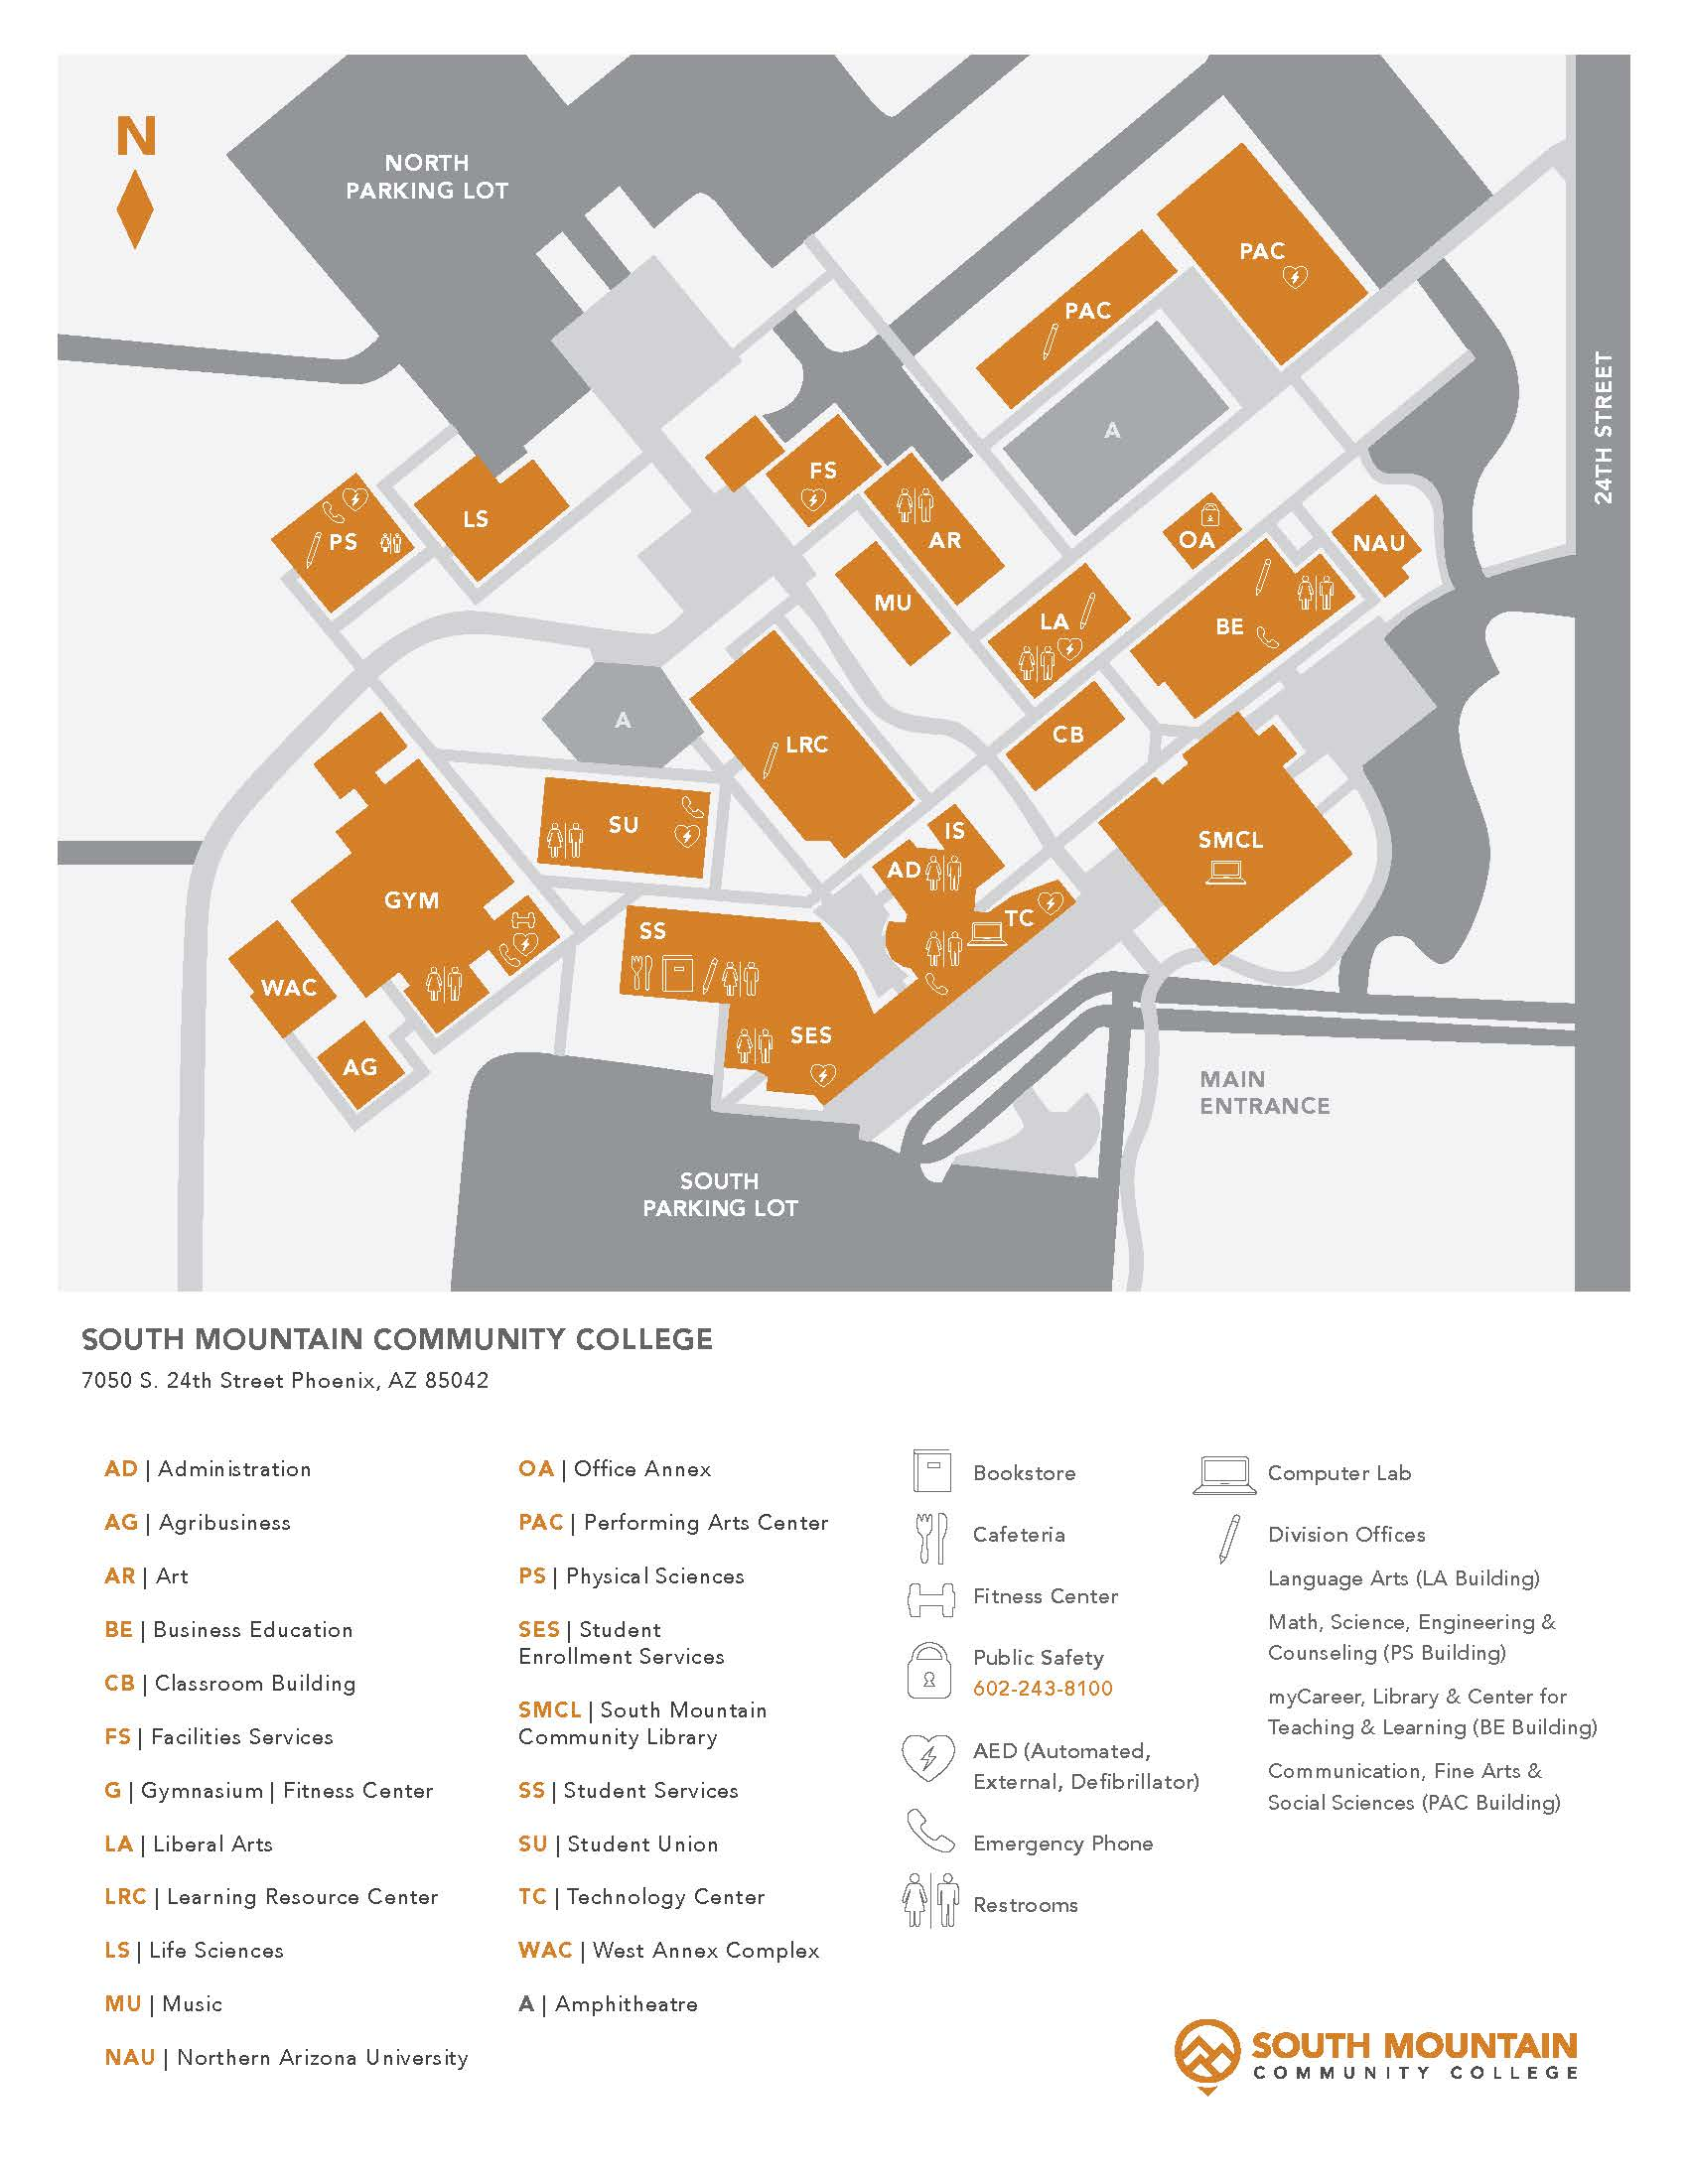 South Mountain Community College Campus Map.Maps Directions Parking About The Library Libguides At South